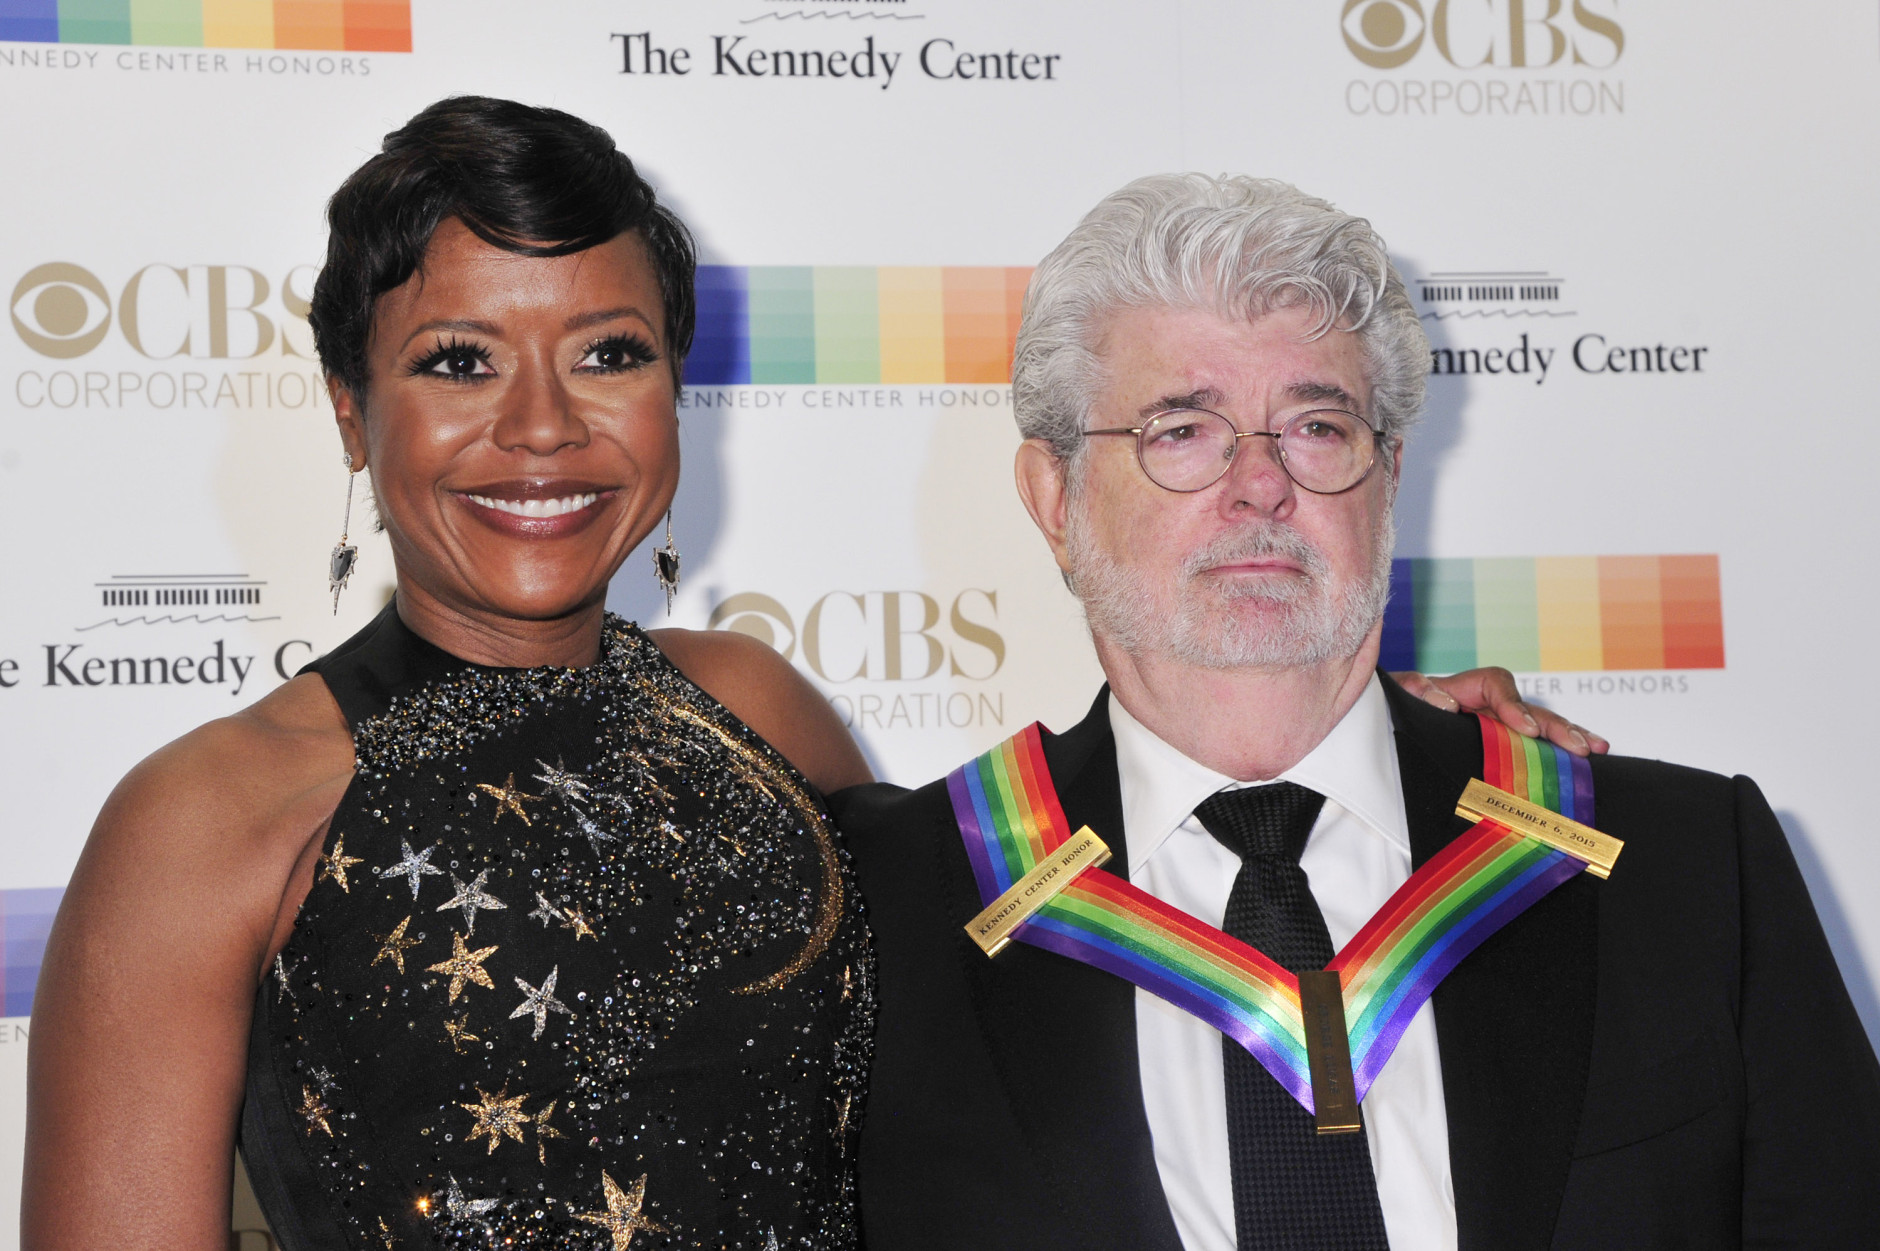 WASHINGTON, DC - DECEMBER 06: Honoree George Lucas and Mellody Hobson arrive at the 38th Annual Kennedy Center Honors Gala at the Kennedy Center for the Performing Arts on December 6, 2015 in Washington, DC.  (Kris Connor/Getty Images)